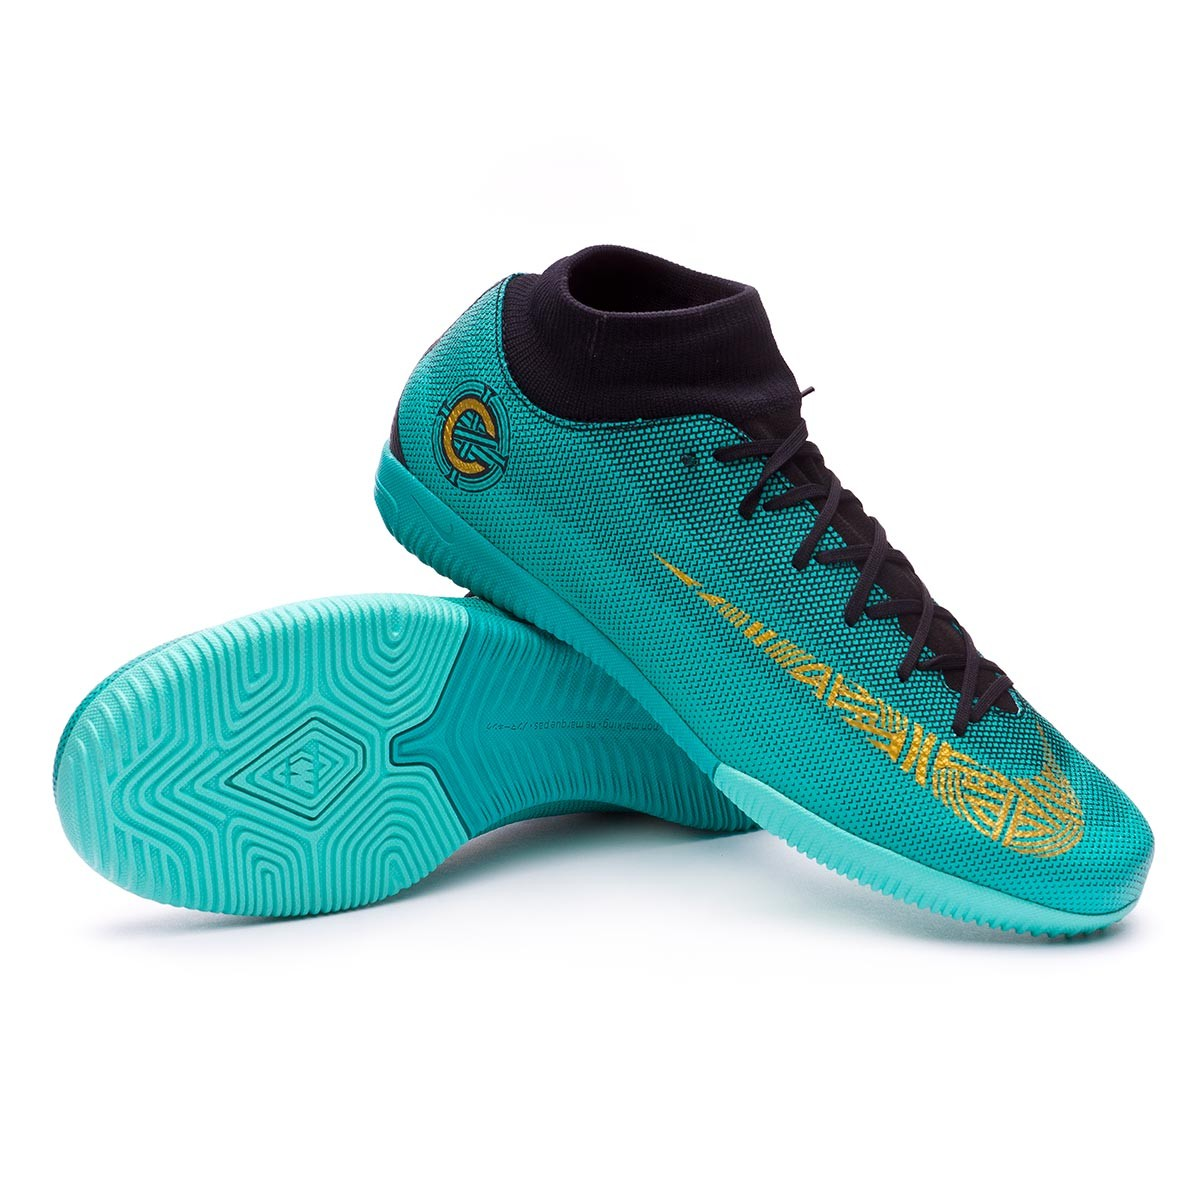 newest 2b6c5 126c8 Tenis Nike Mercurial SuperflyX VI Academy CR7 IC Clear jade-Metallic vivid  gold-Black - Tienda de fútbol Fútbol Emotion